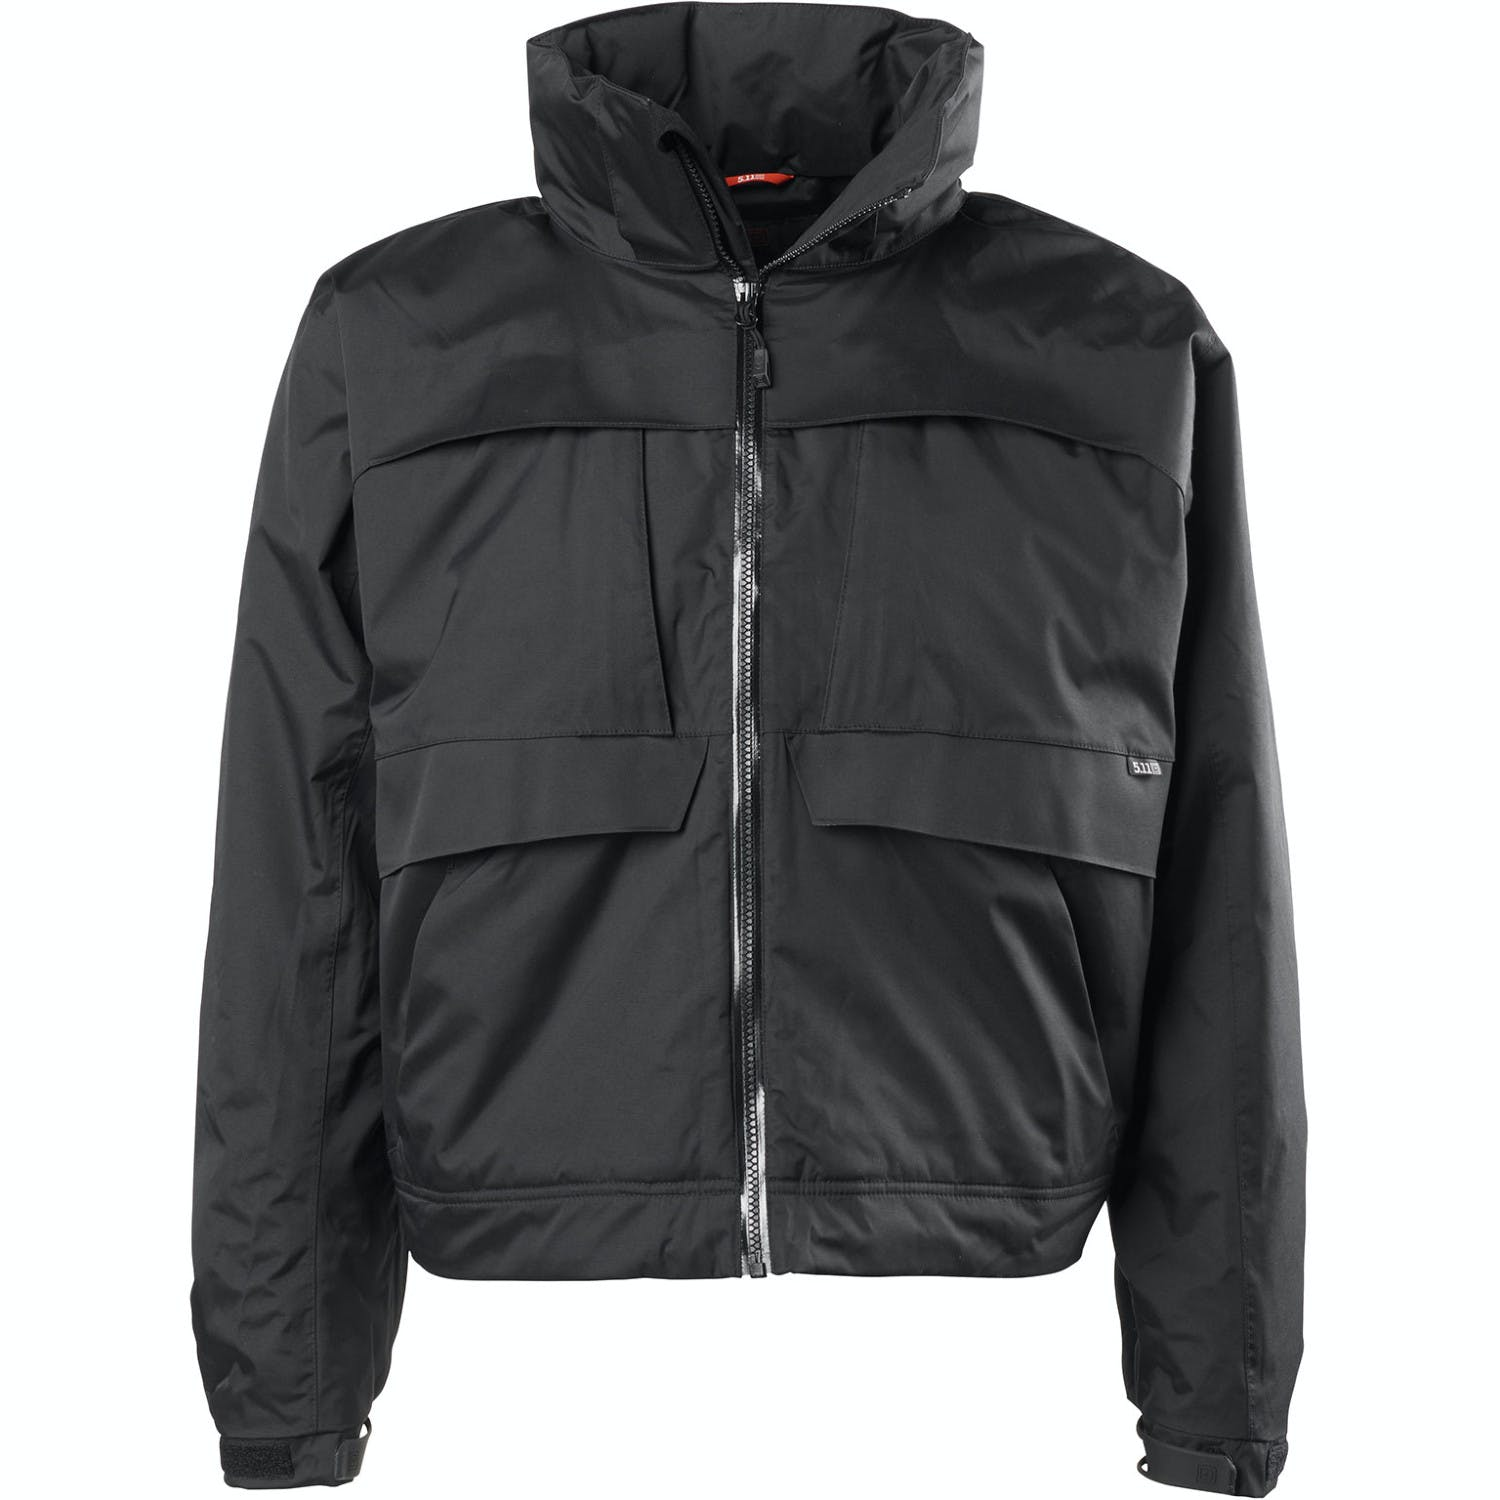 5 11 Tactical Tempest Duty Jacket From Nightgear Uk